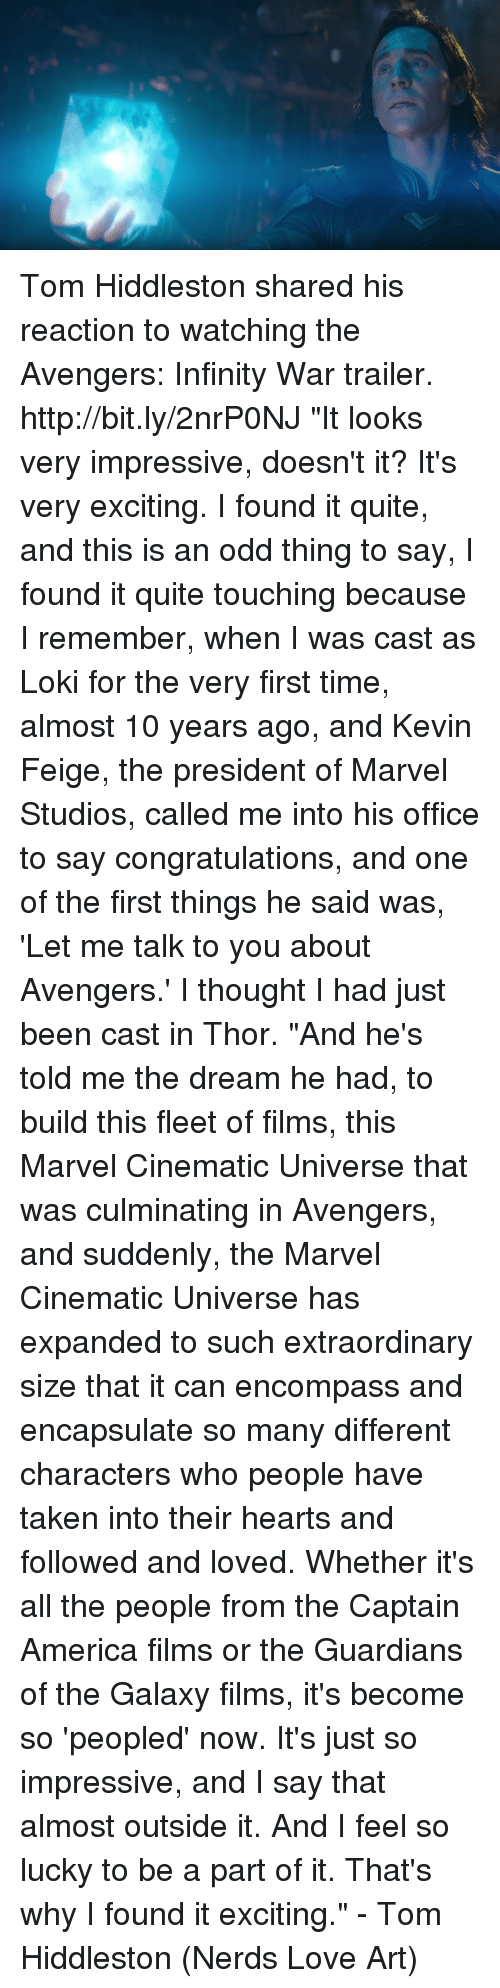 "America, Love, and Memes: Tom Hiddleston shared his reaction to watching the Avengers: Infinity War trailer. http://bit.ly/2nrP0NJ  ""It looks very impressive, doesn't it? It's very exciting. I found it quite, and this is an odd thing to say, I found it quite touching because I remember, when I was cast as Loki for the very first time, almost 10 years ago, and Kevin Feige, the president of Marvel Studios, called me into his office to say congratulations, and one of the first things he said was, 'Let me talk to you about Avengers.' I thought I had just been cast in Thor.  ""And he's told me the dream he had, to build this fleet of films, this Marvel Cinematic Universe that was culminating in Avengers, and suddenly, the Marvel Cinematic Universe has expanded to such extraordinary size that it can encompass and encapsulate so many different characters who people have taken into their hearts and followed and loved. Whether it's all the people from the Captain America films or the Guardians of the Galaxy films, it's become so 'peopled' now. It's just so impressive, and I say that almost outside it. And I feel so lucky to be a part of it. That's why I found it exciting."" - Tom Hiddleston  (Nerds Love Art)"